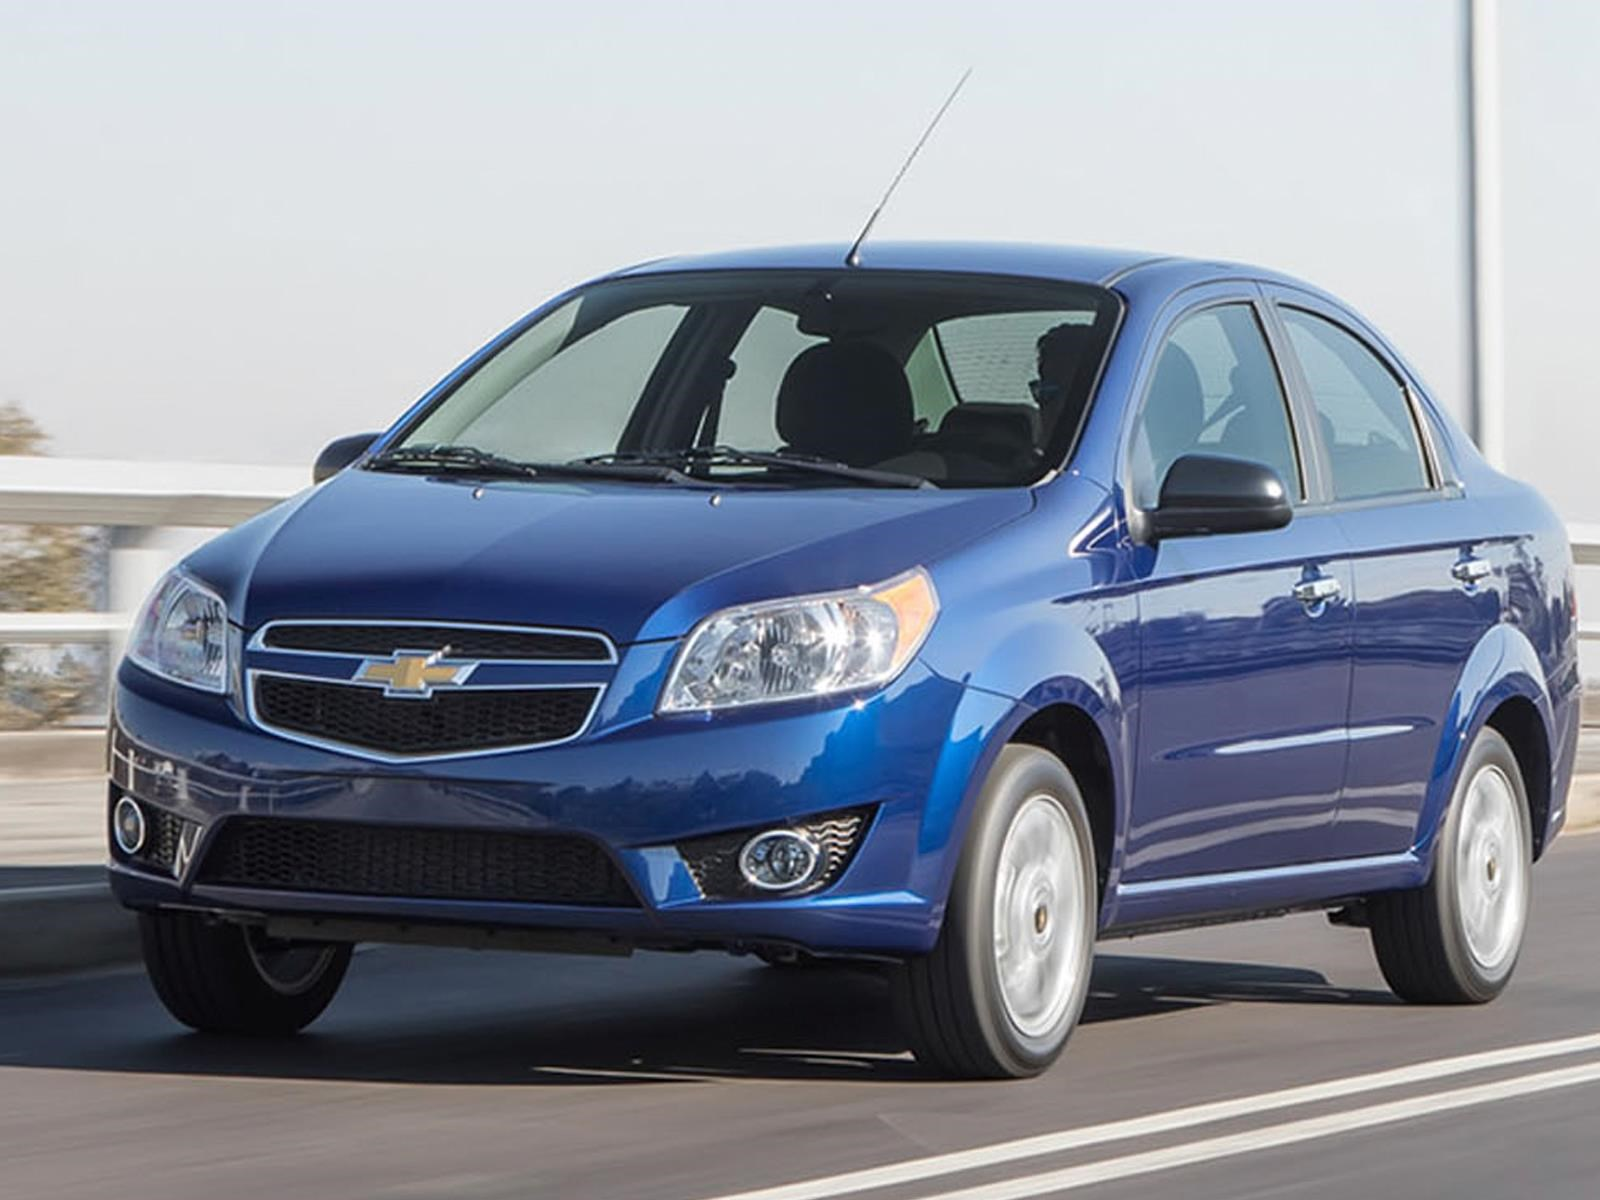 chevrolet aveo 2017 with Chevrolet Aveo 2018 Llega A Mexico Desde 198600 Pesos on Chevrolet Aveo 2018 5 also Chevrolet Spark 2018 further Ford Fiesta St Racing also Matiz likewise Chevrolet Aveo 2018 Llega A Mexico Desde 198600 Pesos.